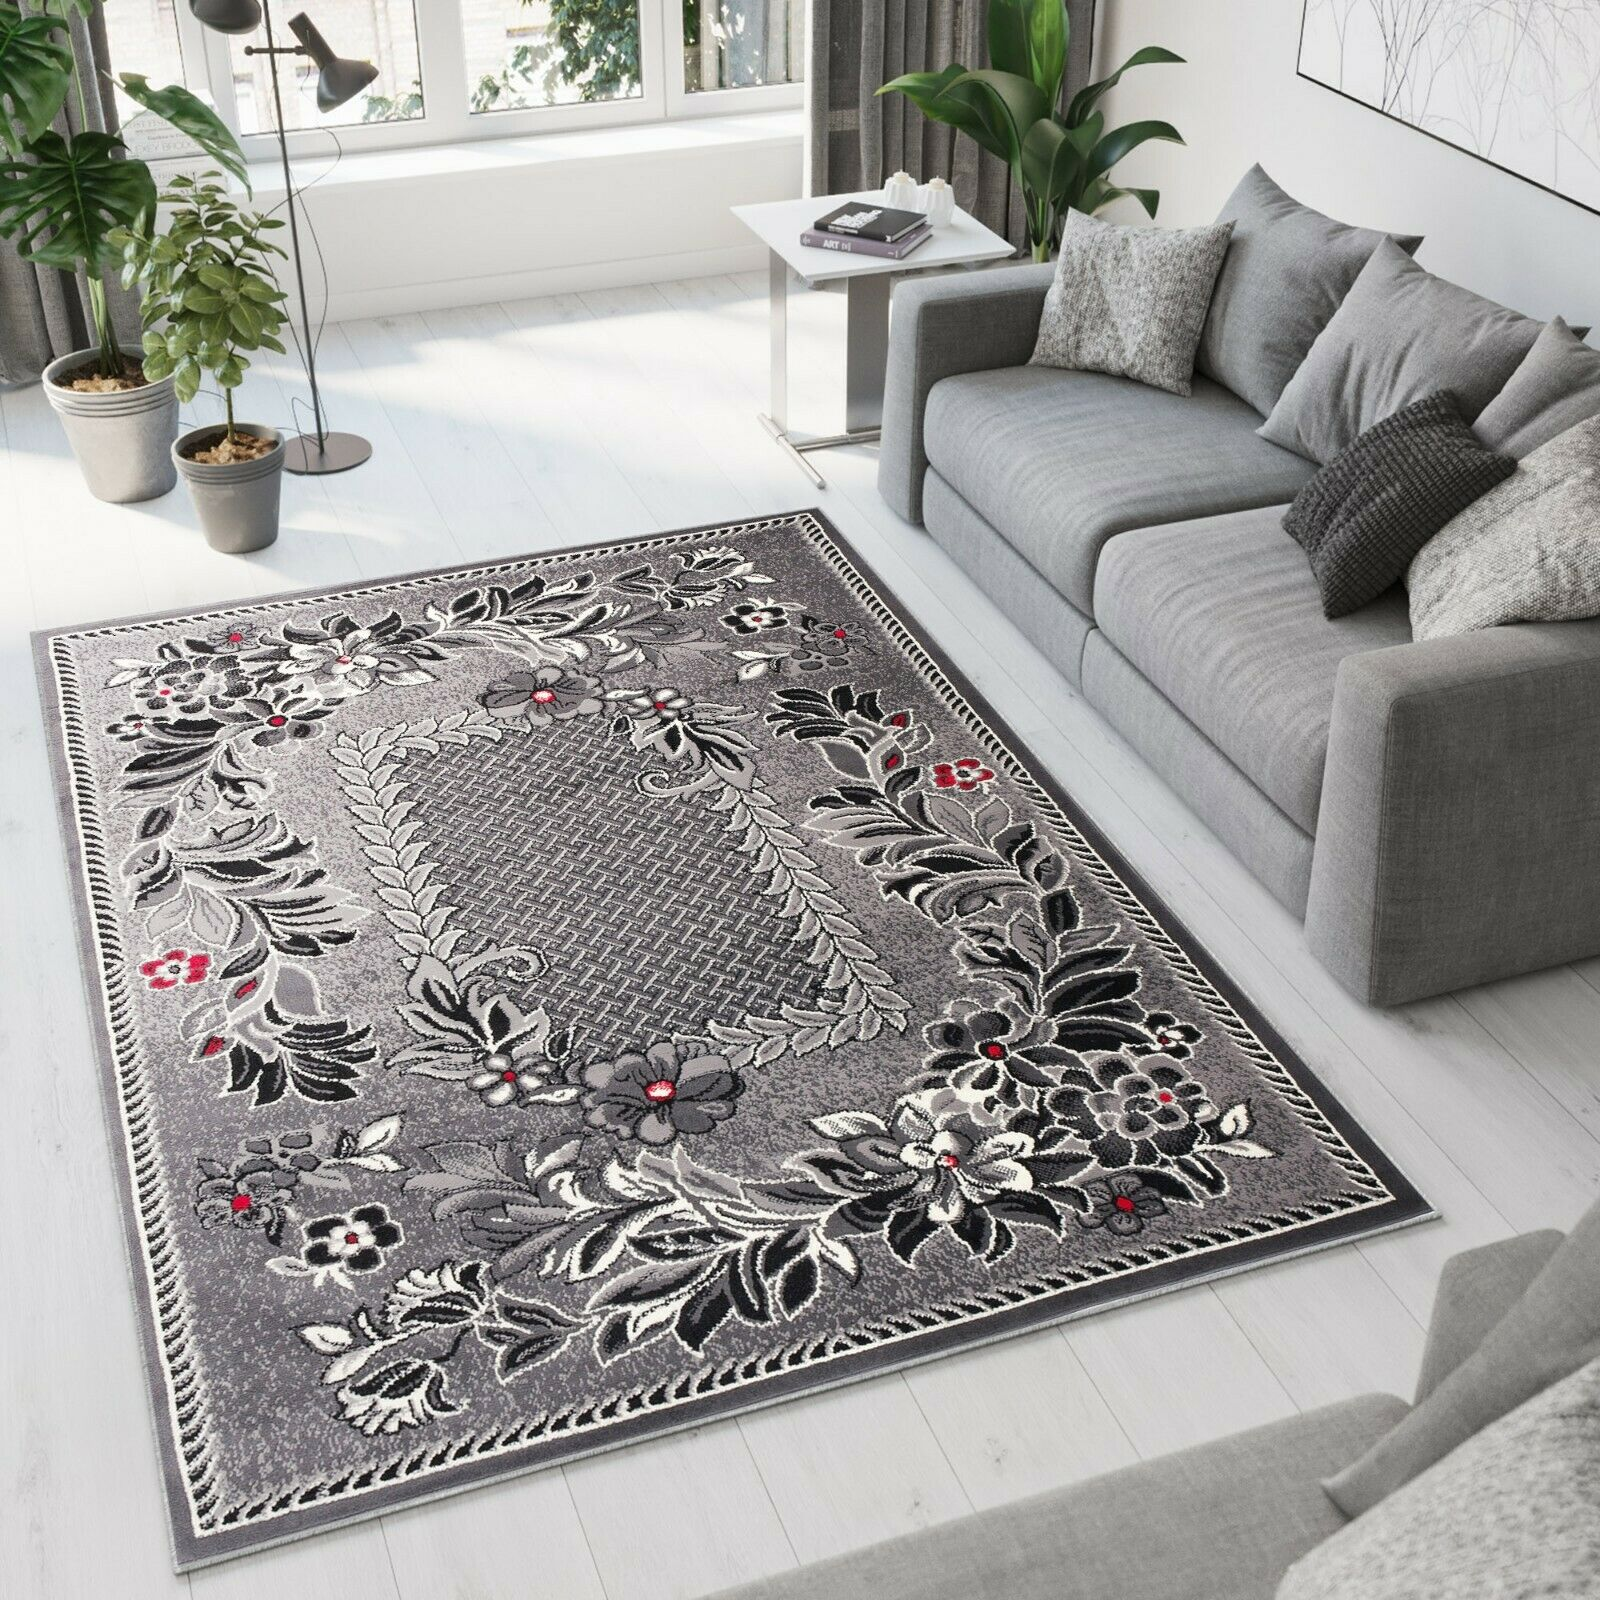 BROWN Different Sizes TAPISO BEAUTIFUL MODERN RUGS TOP DESIGN LIVING ROOM